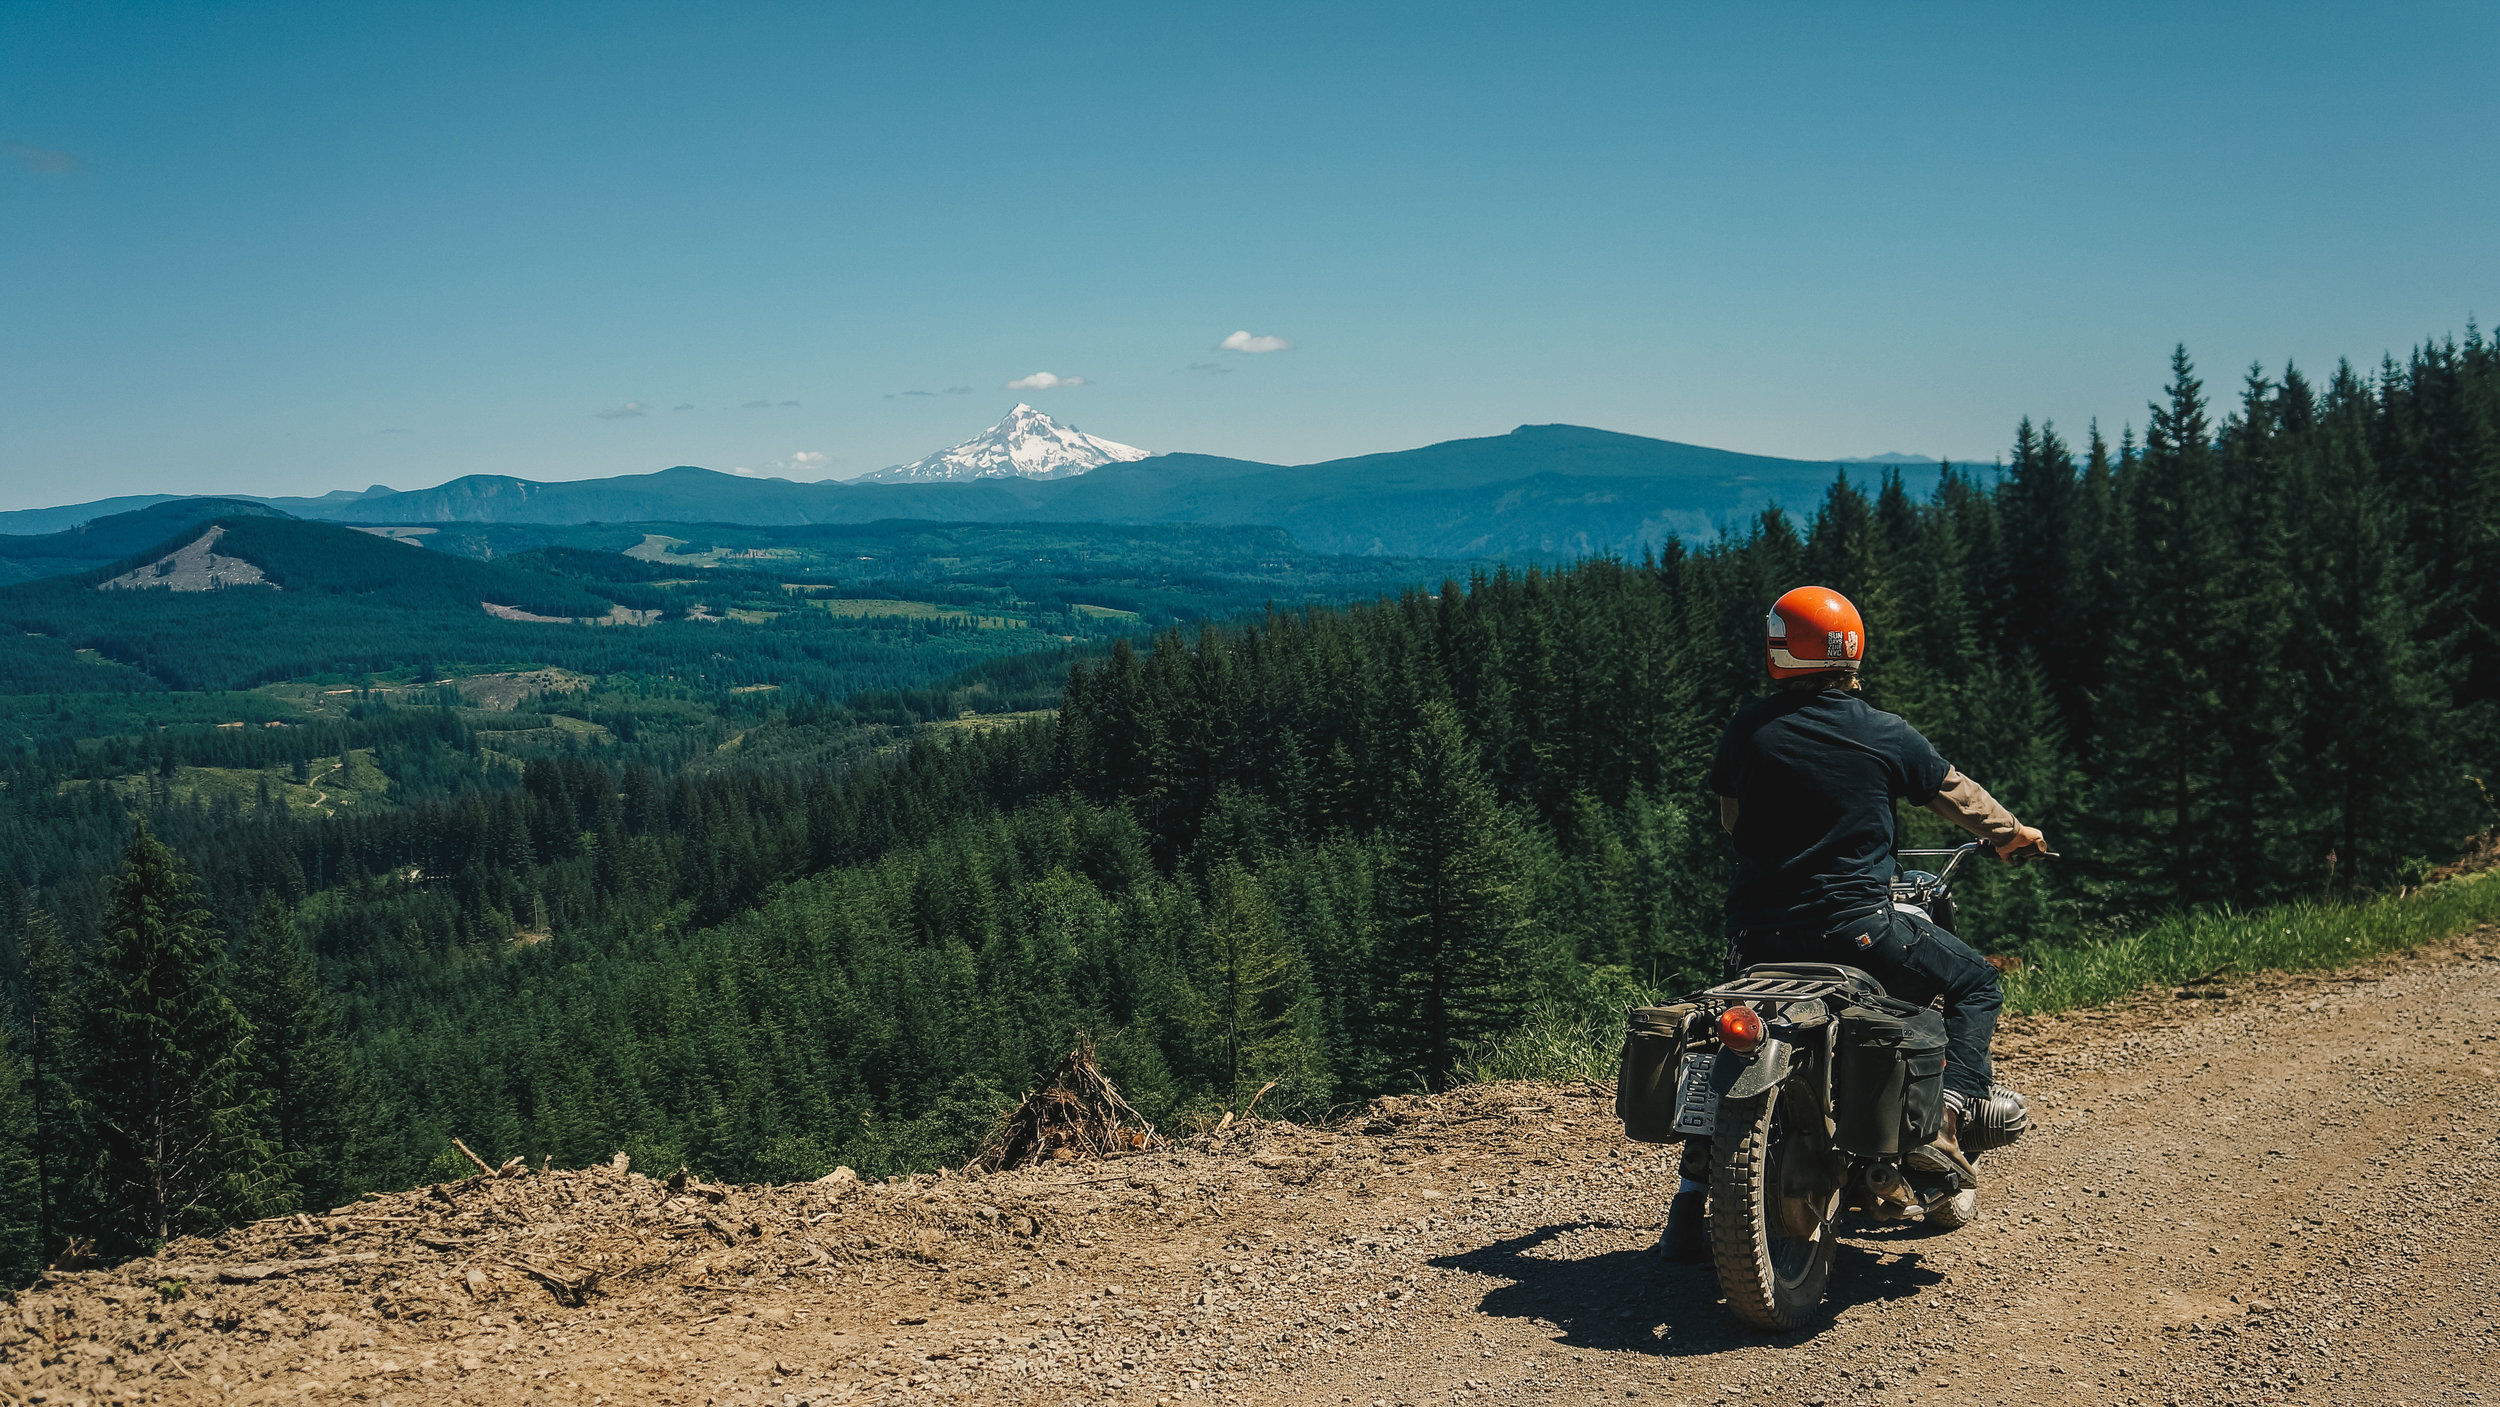 Mt. Hood in the distance